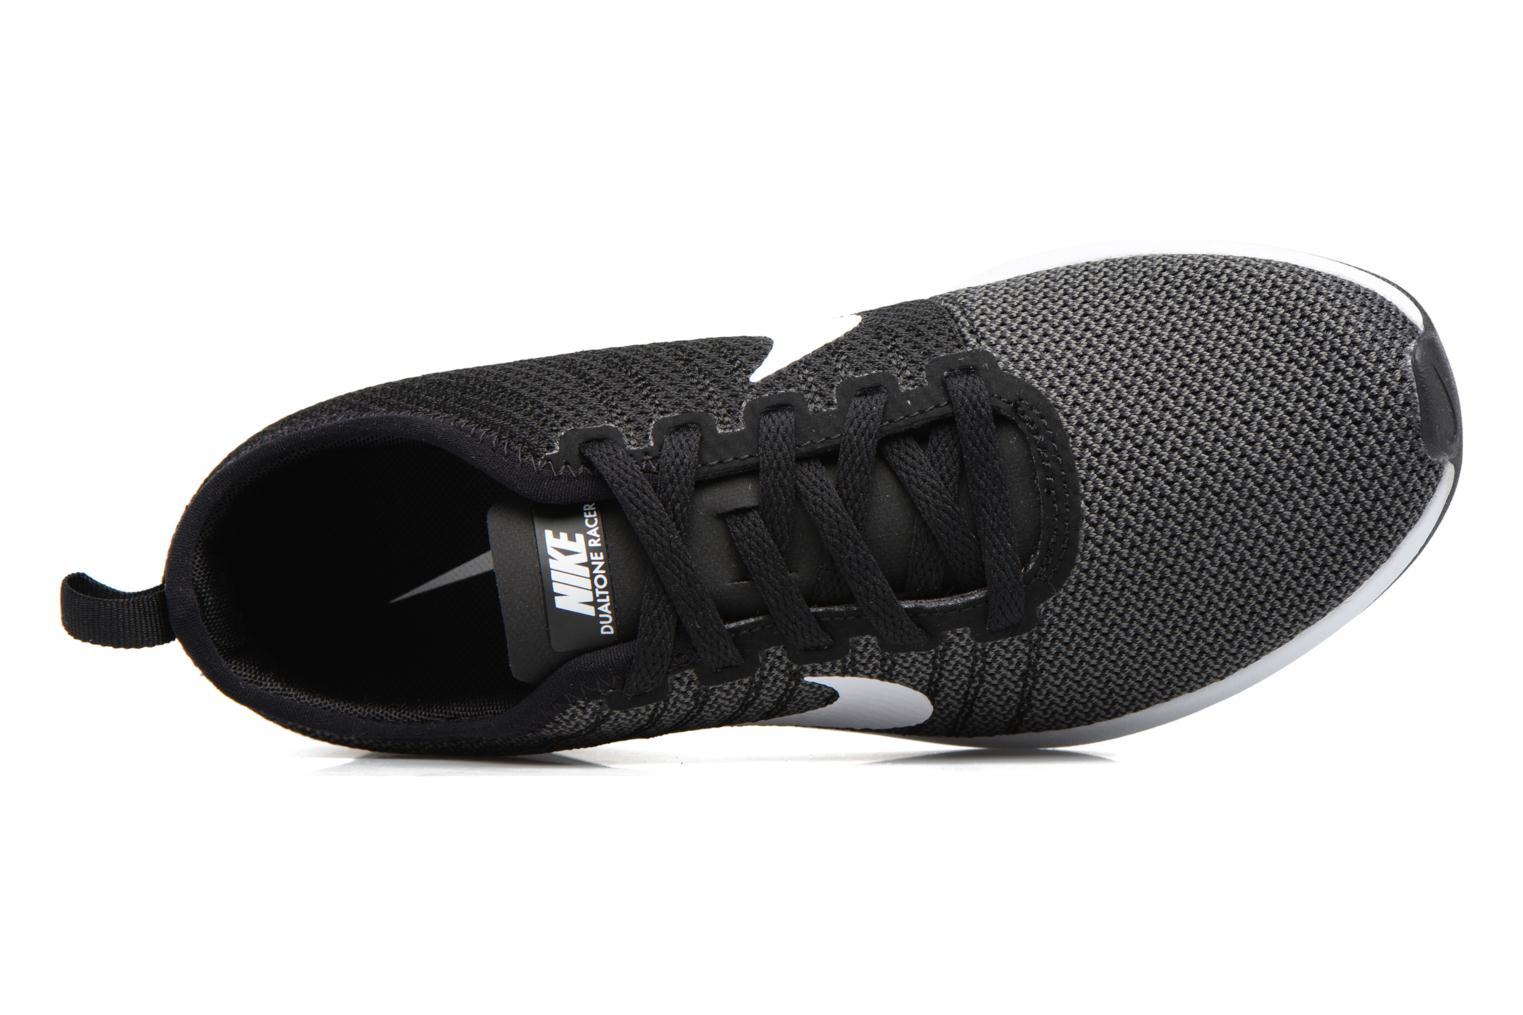 W Nike Dualtone Racer BLACK/WHITE-DARK GREY